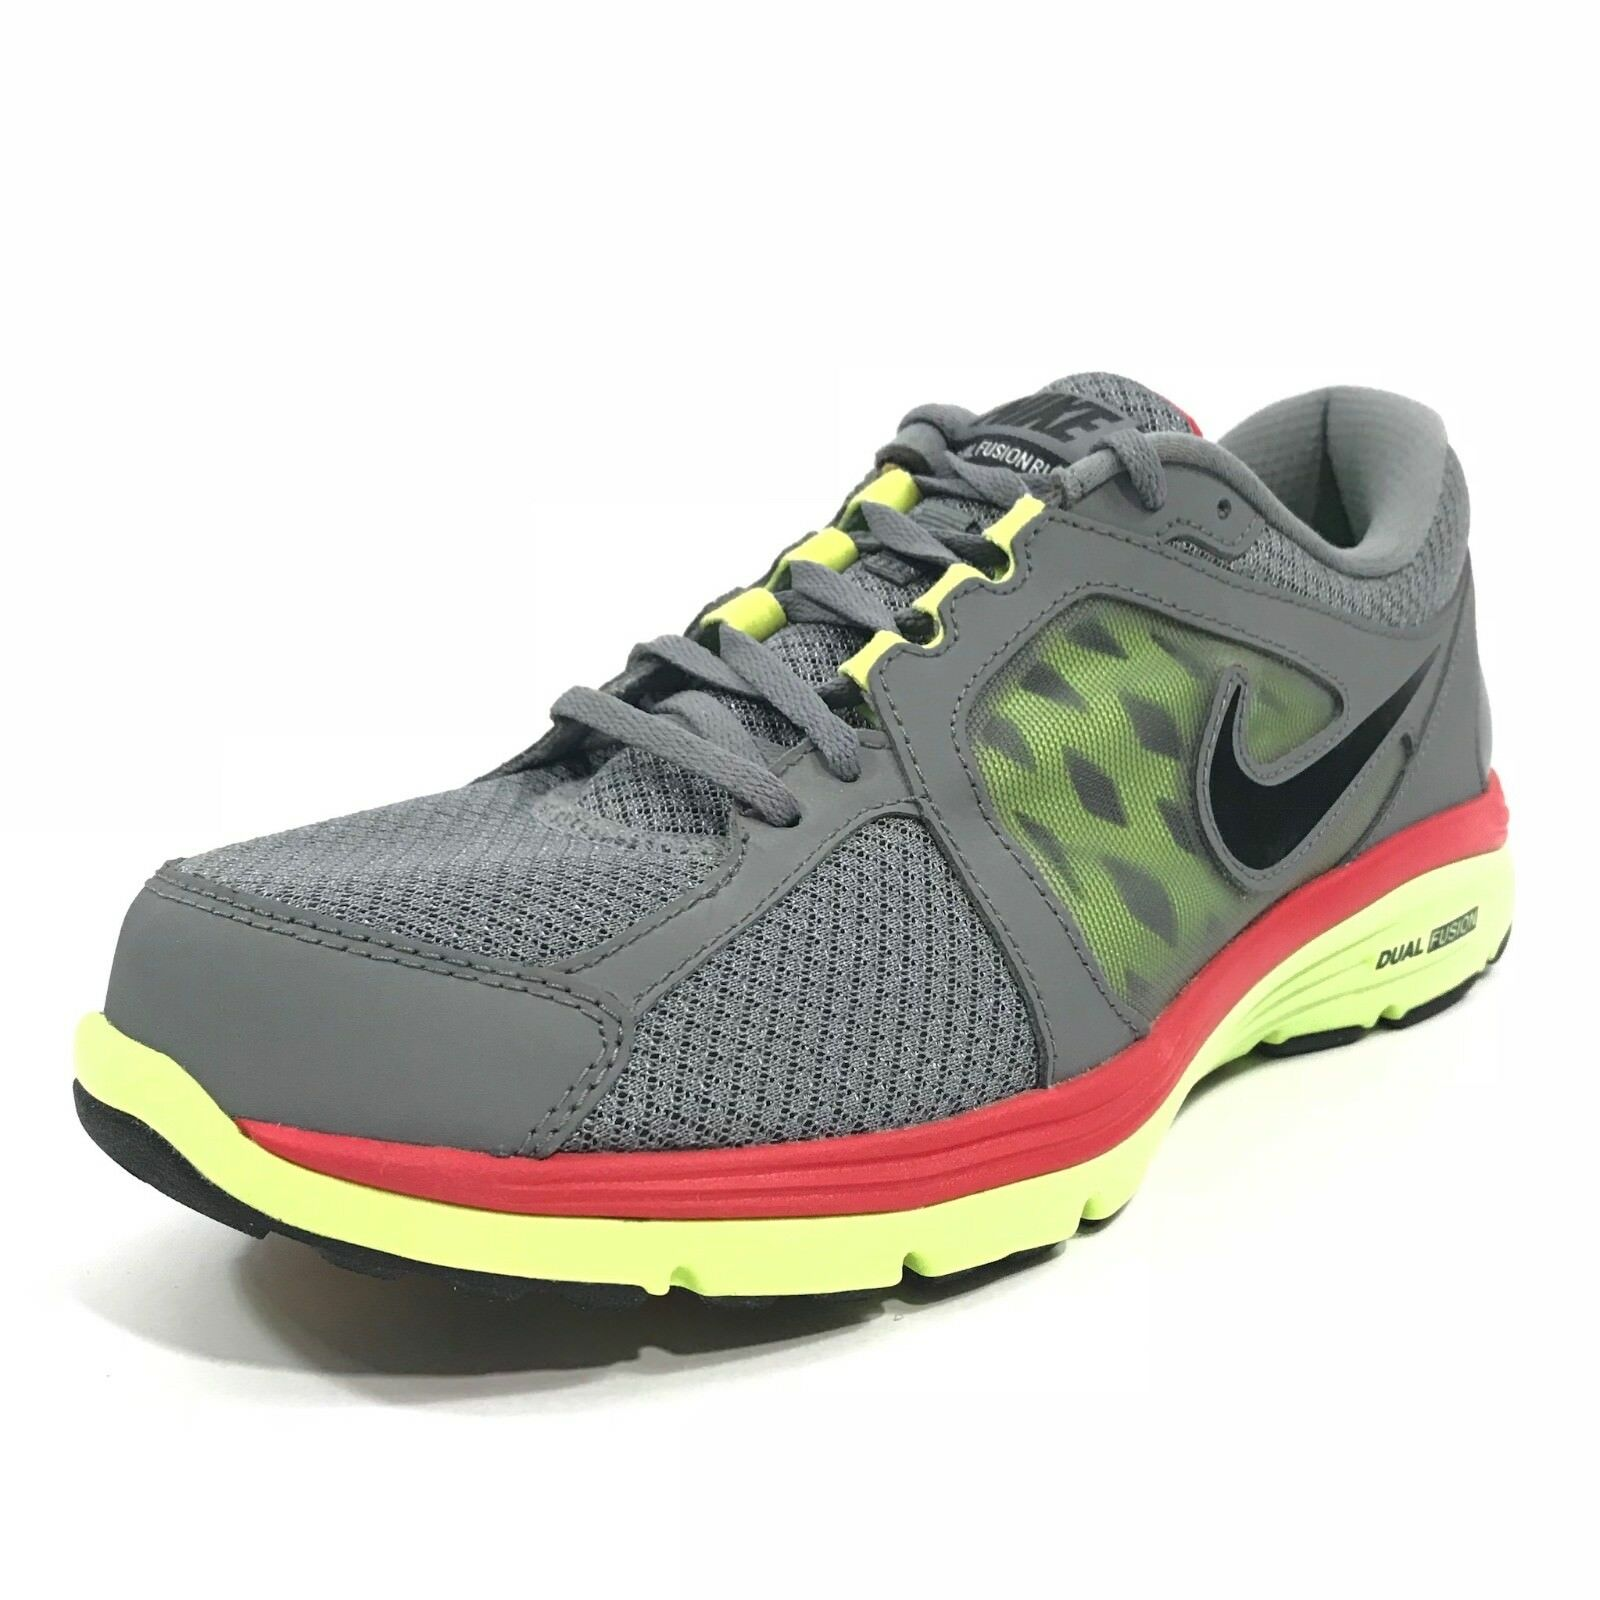 Nike Mens Dual Fusion Running Trainer Shoes Gray Red Yellow Sz 10.5 525760-002